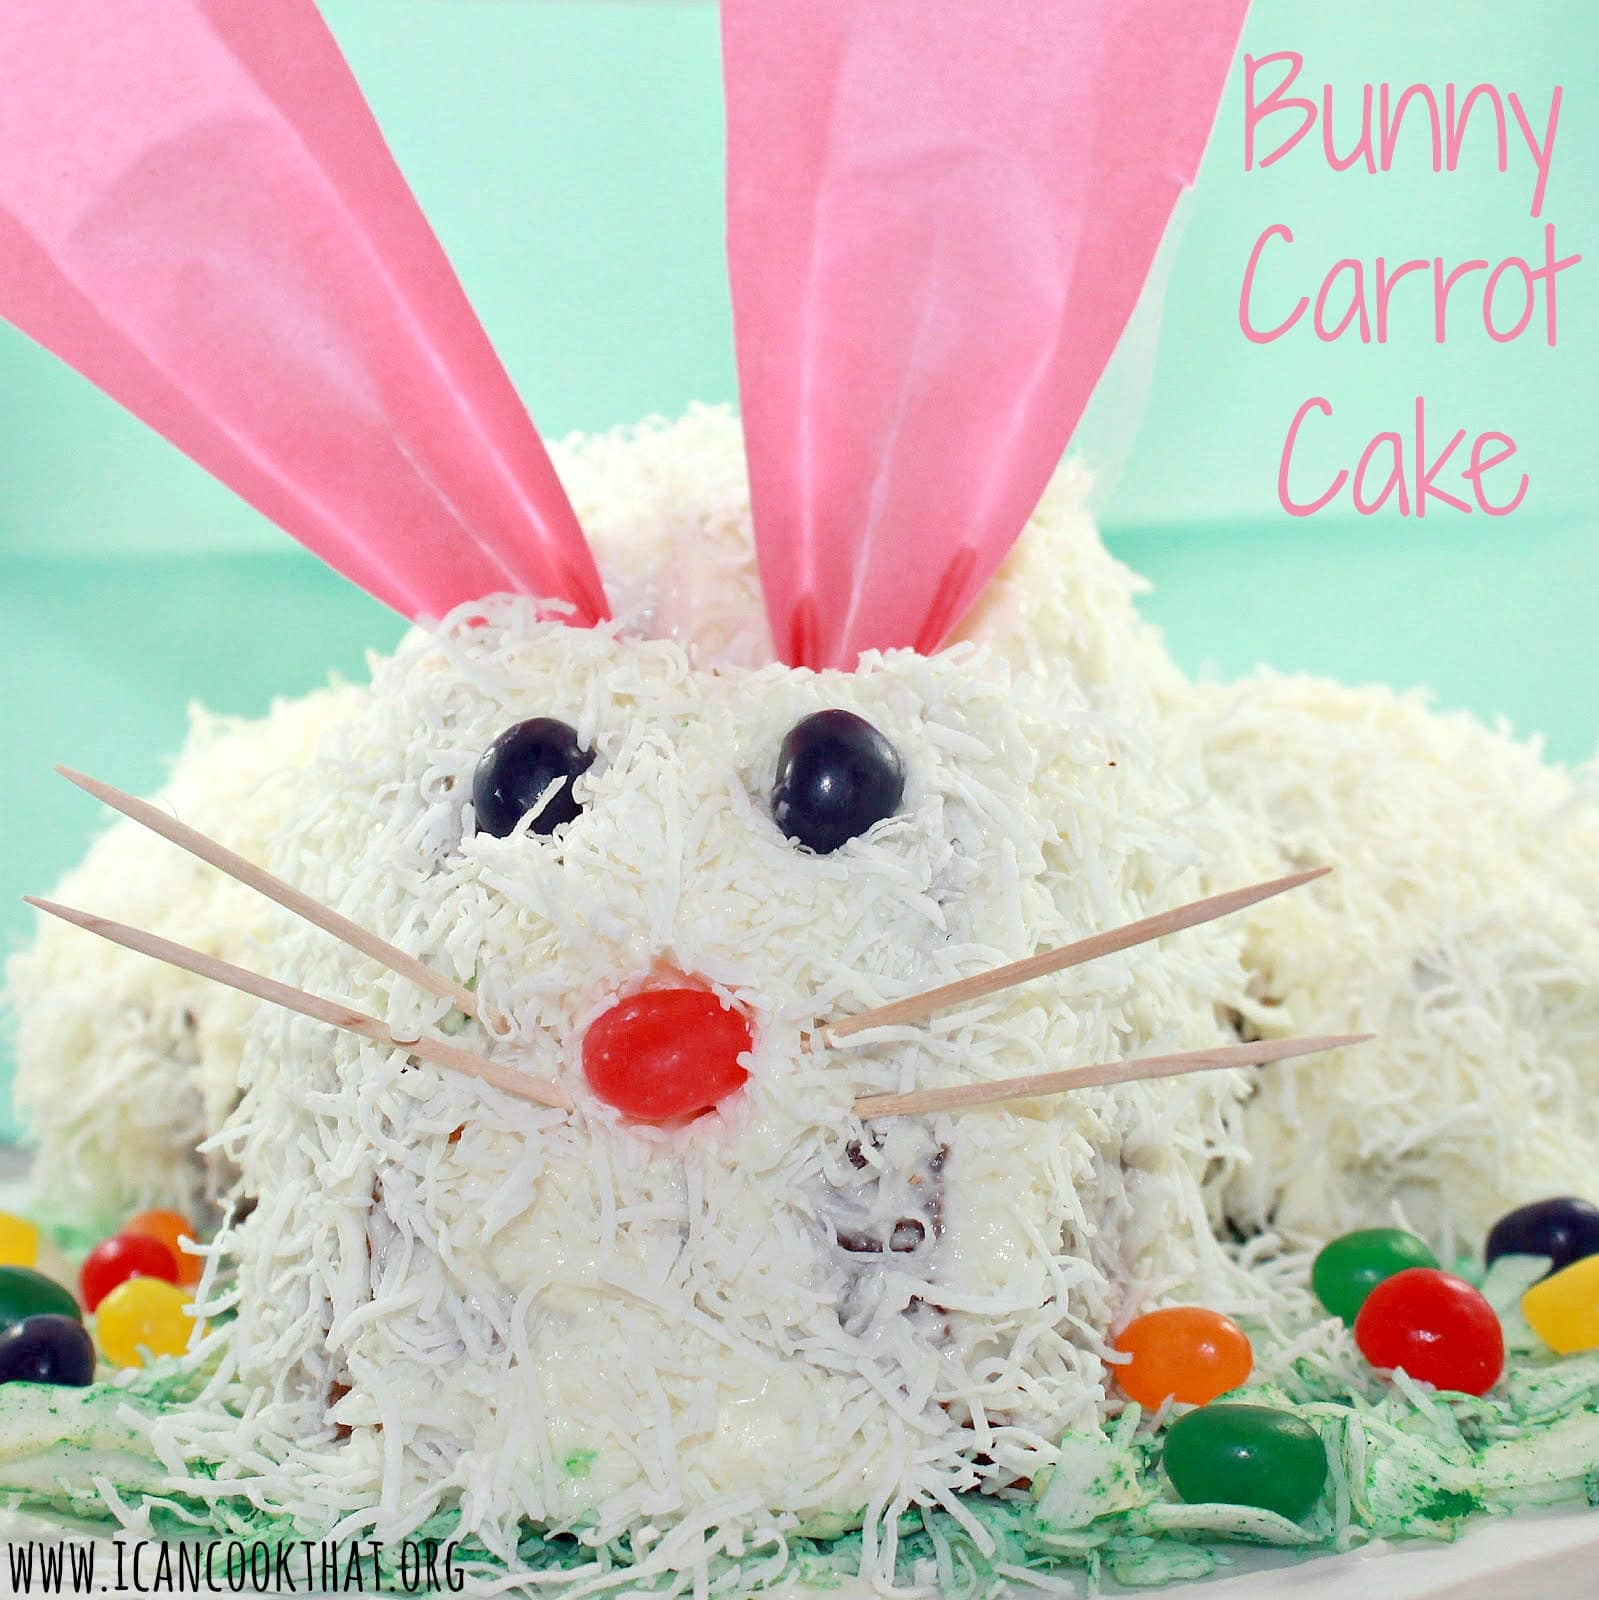 Bunny Carrot Cake Recipe | I Can Cook That